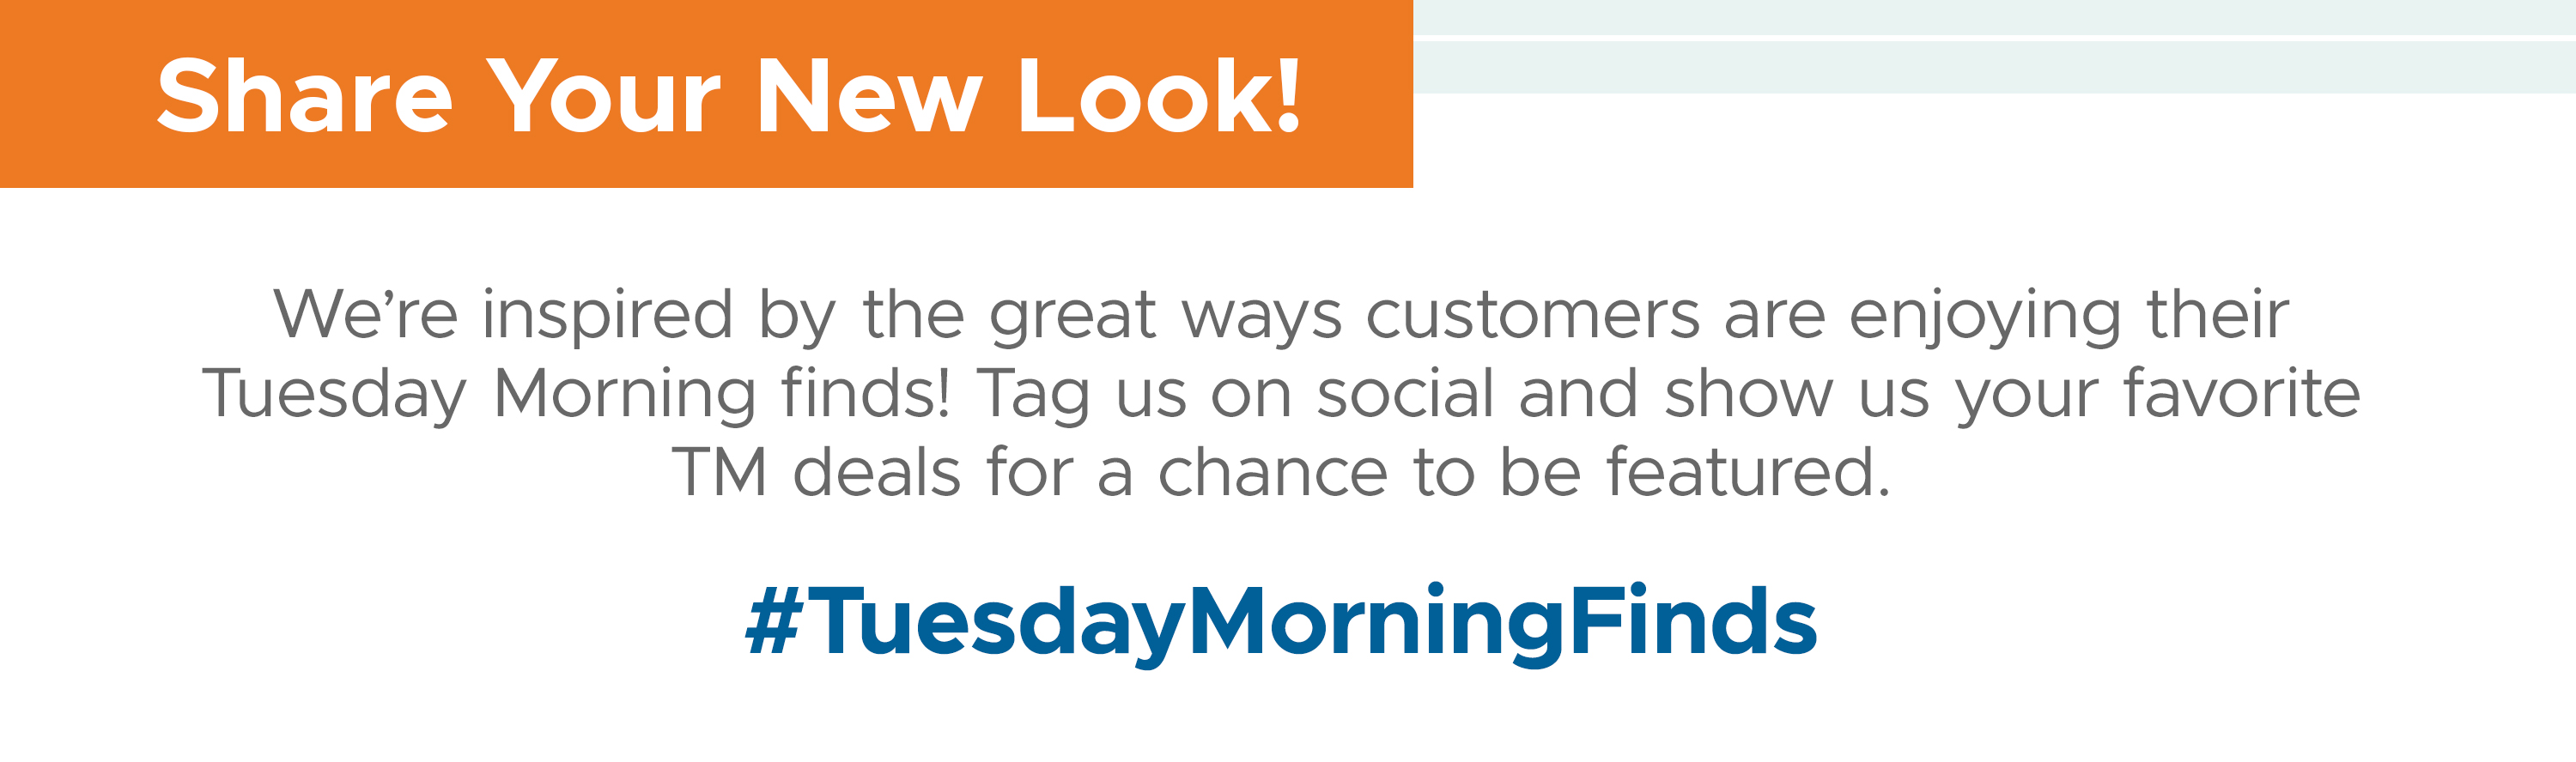 Share Your New Look! #TuesdayMorningFinds